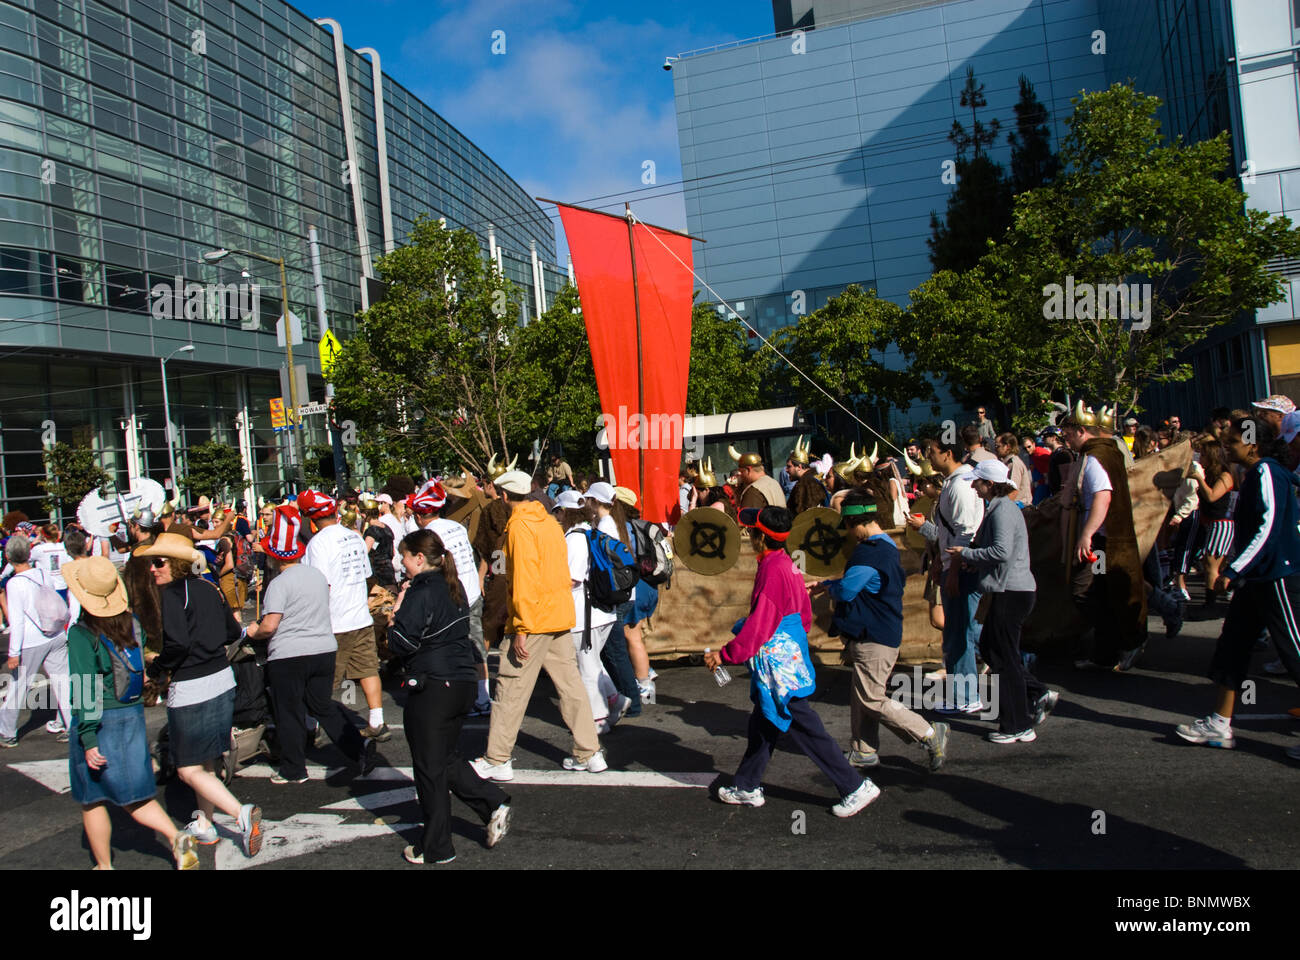 California: San Francisco Bay to Breakers annual foot race. Photo copyright Lee Foster. Photo # 31-casanf80829 - Stock Image